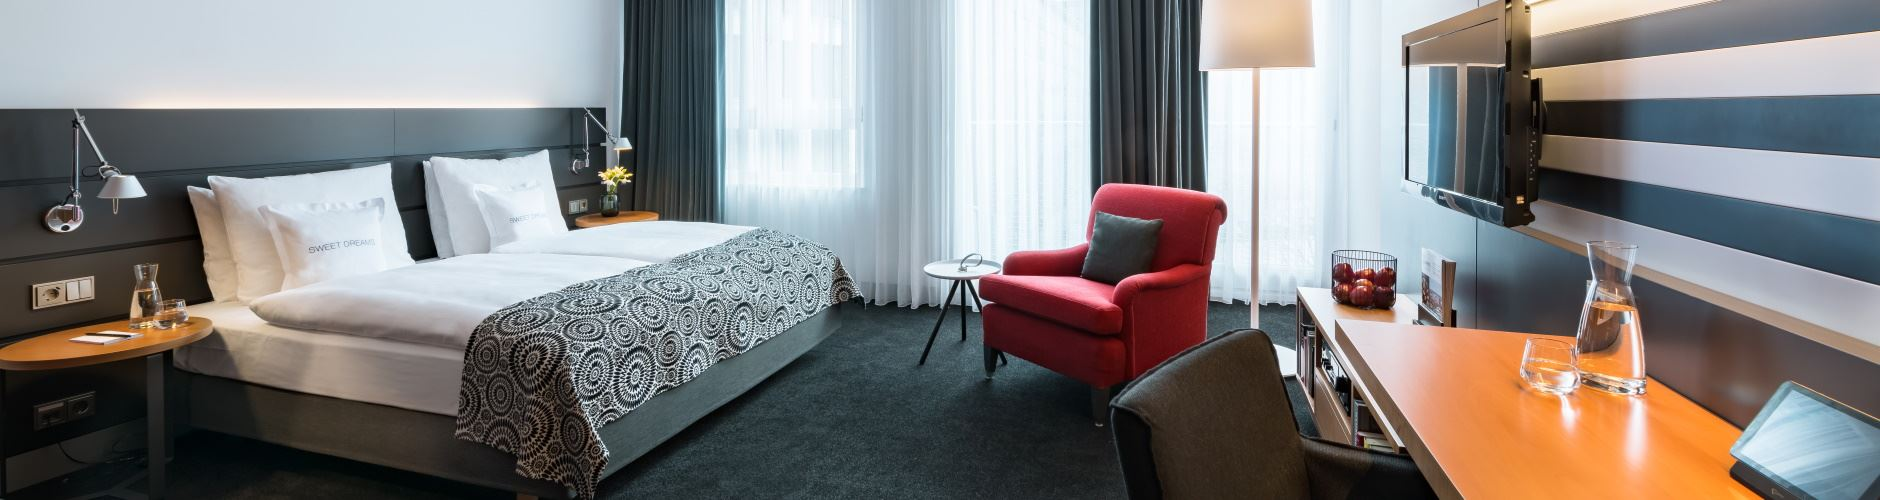 studio-zimmer-im-madison-hotel-in-hamburg